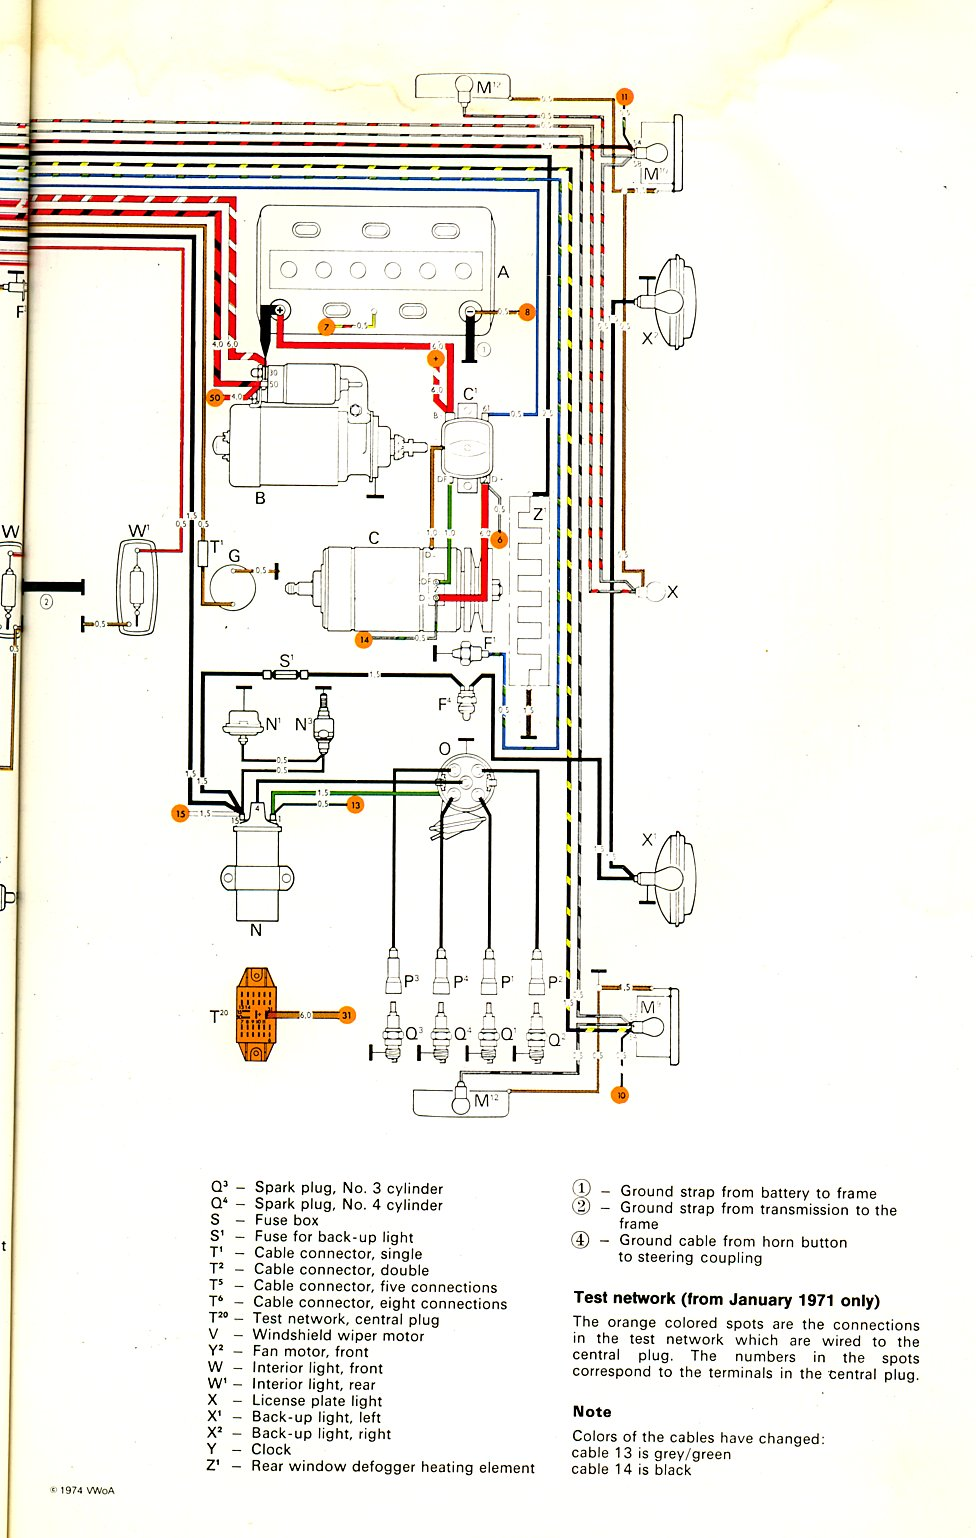 Type 2 Wiring Diagrams Euro Trailer Diagram